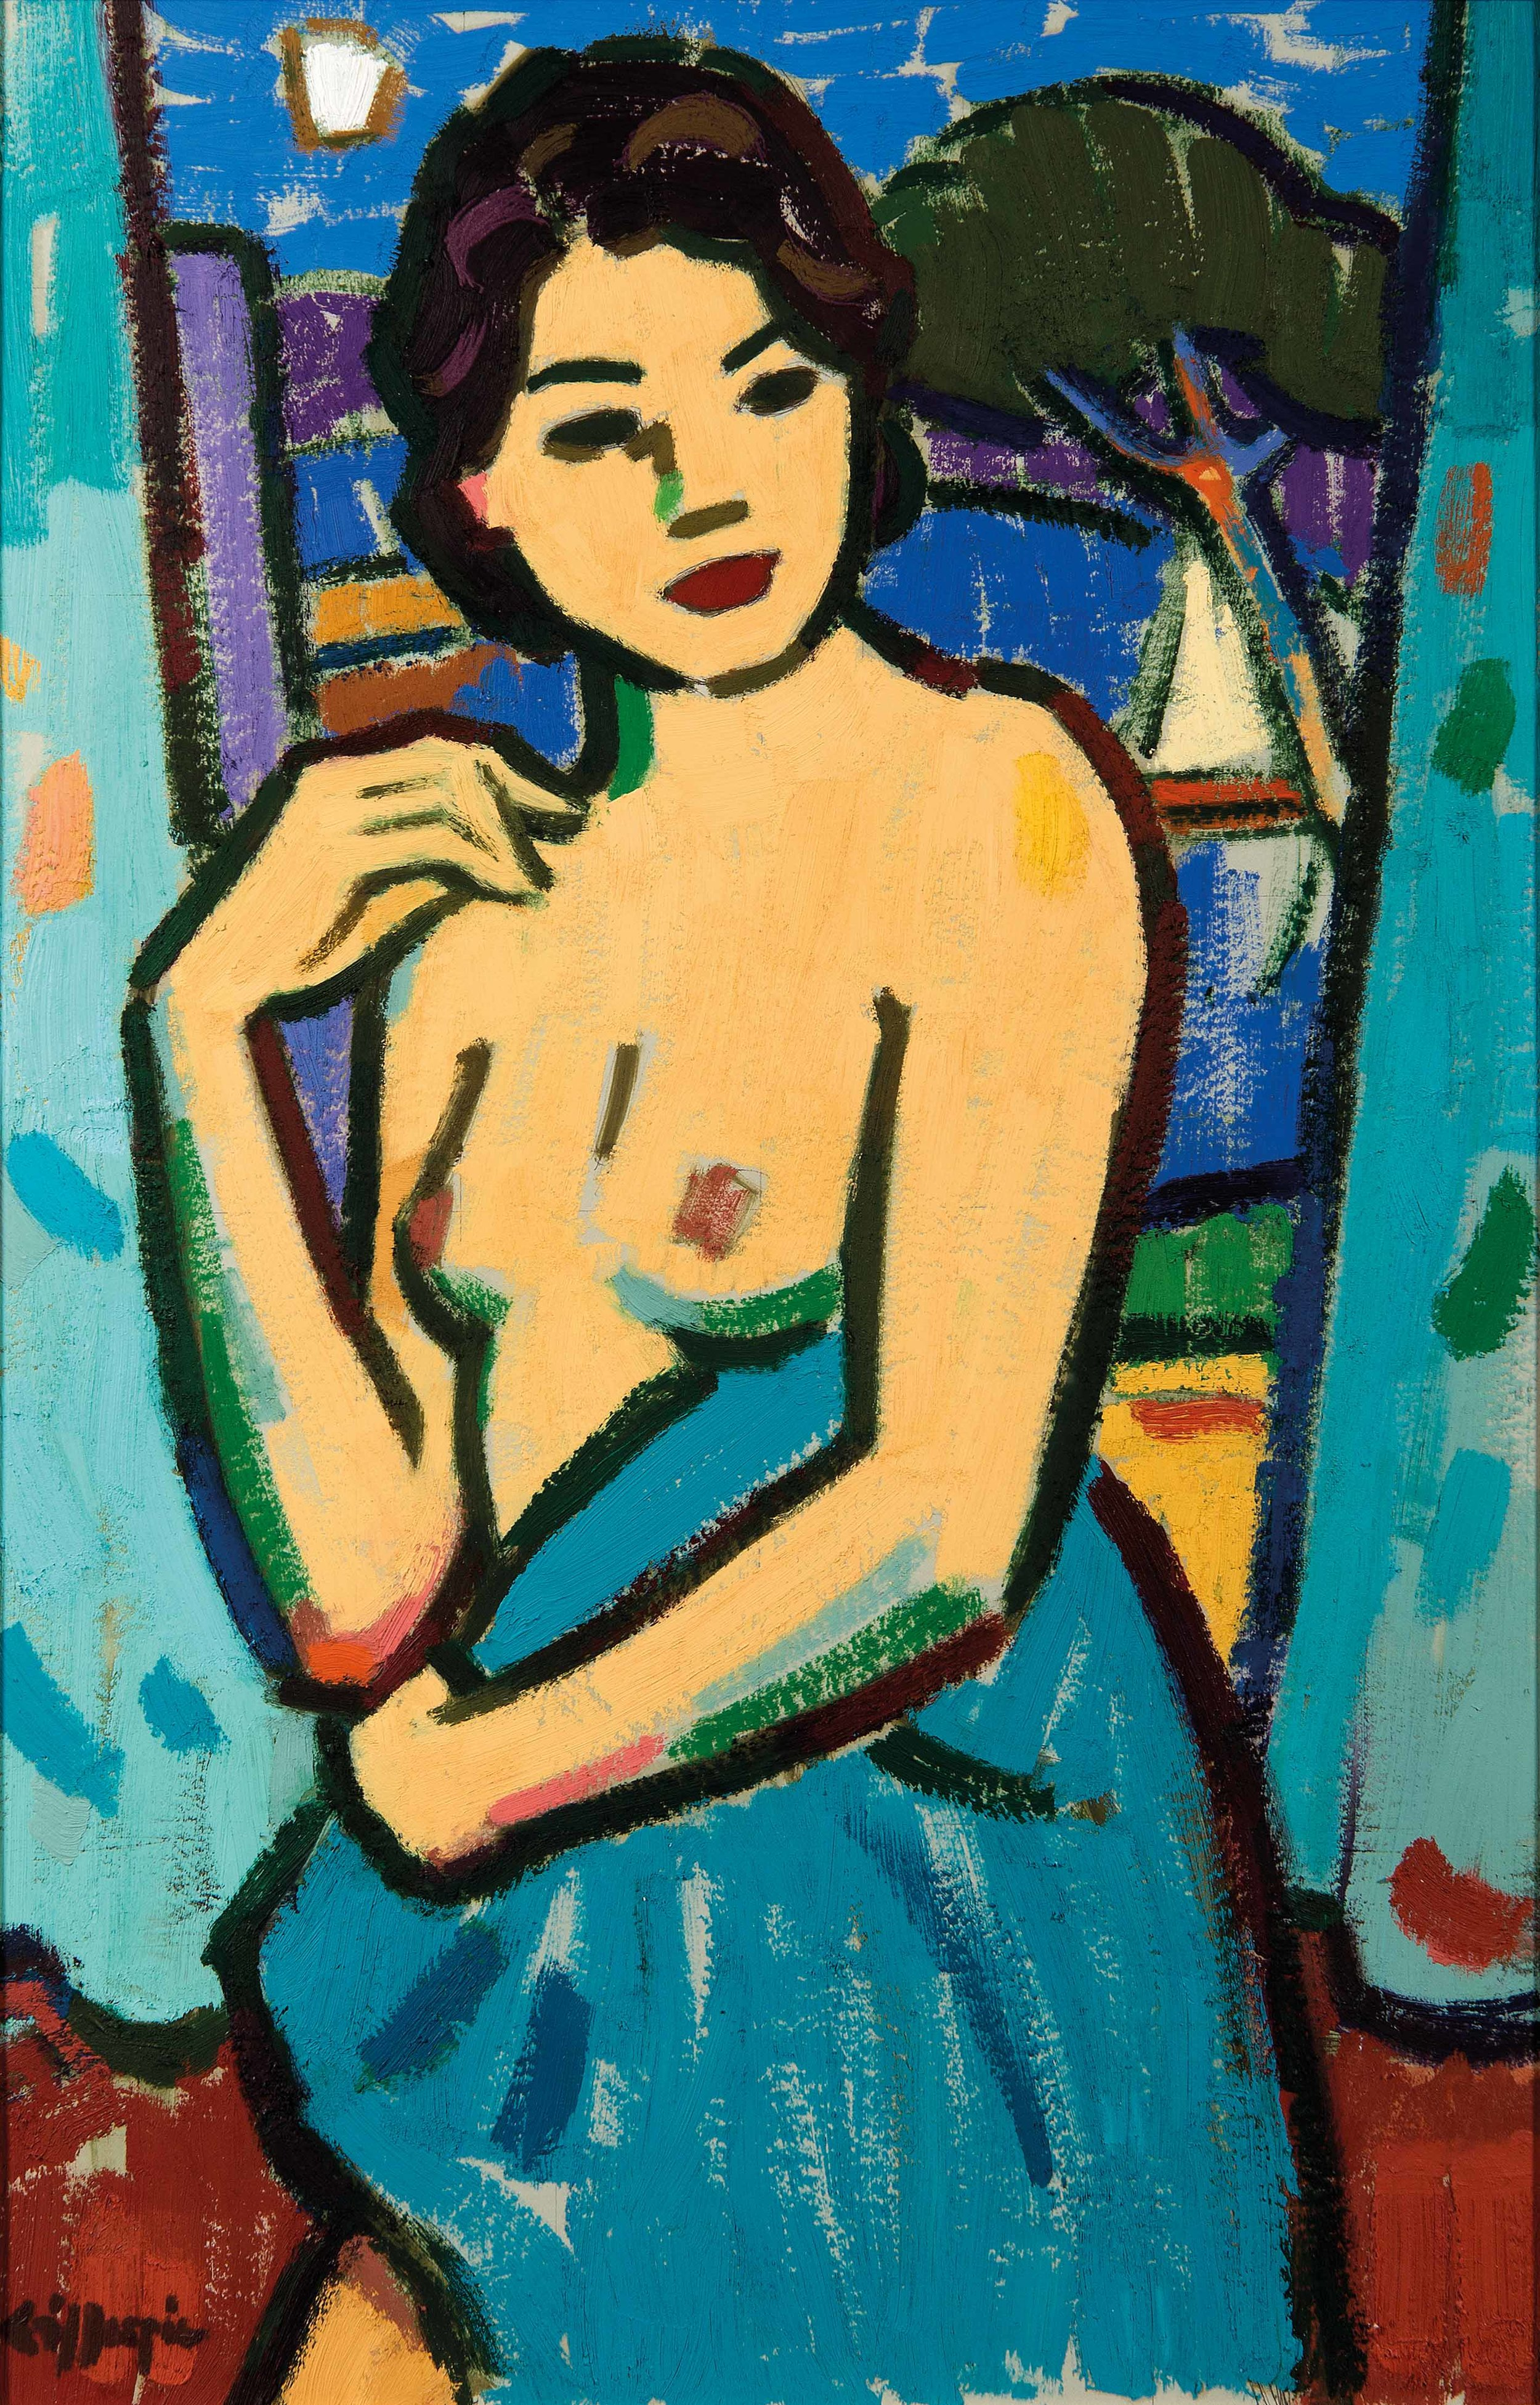 Bather by Joan Gillespie, The Richard Hagen Gallery, Broadway  ss.jpg